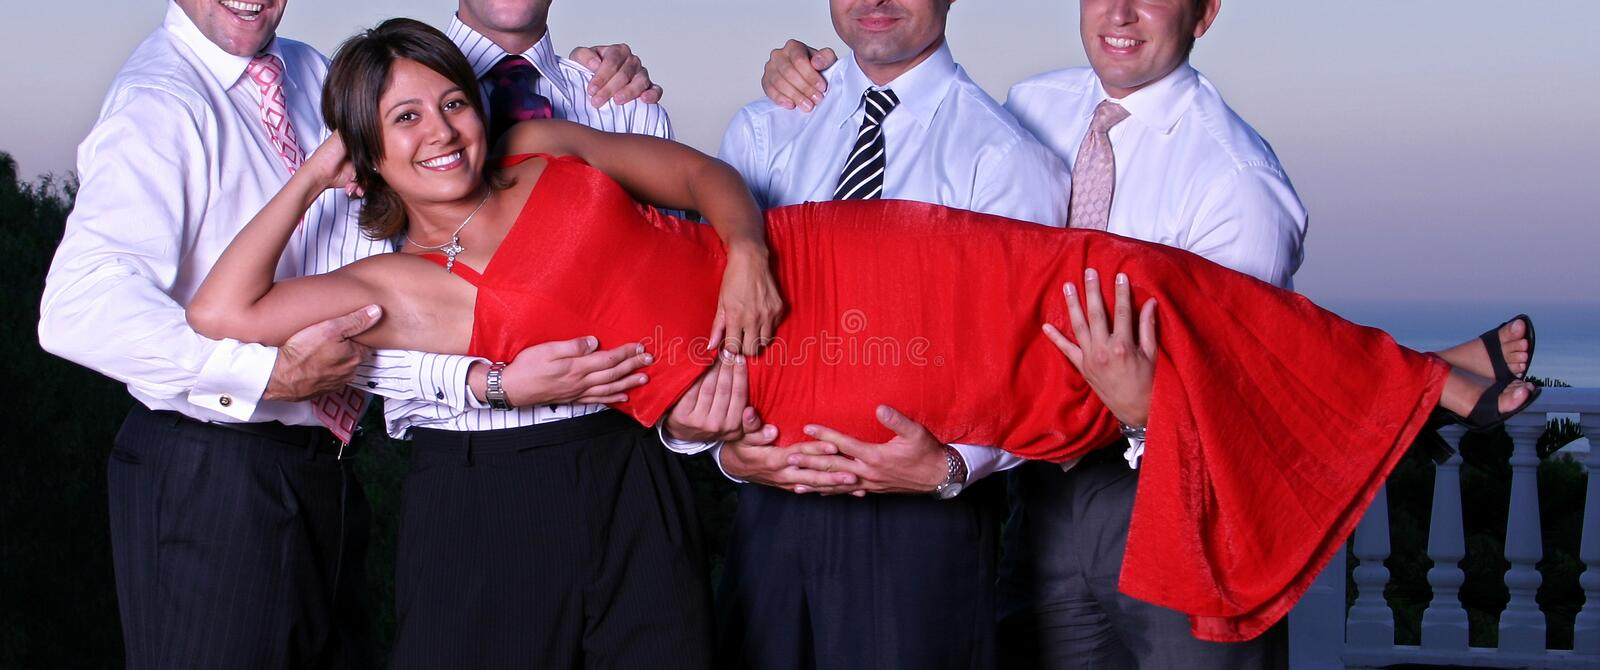 Young woman being lifted by four men at a party stock image